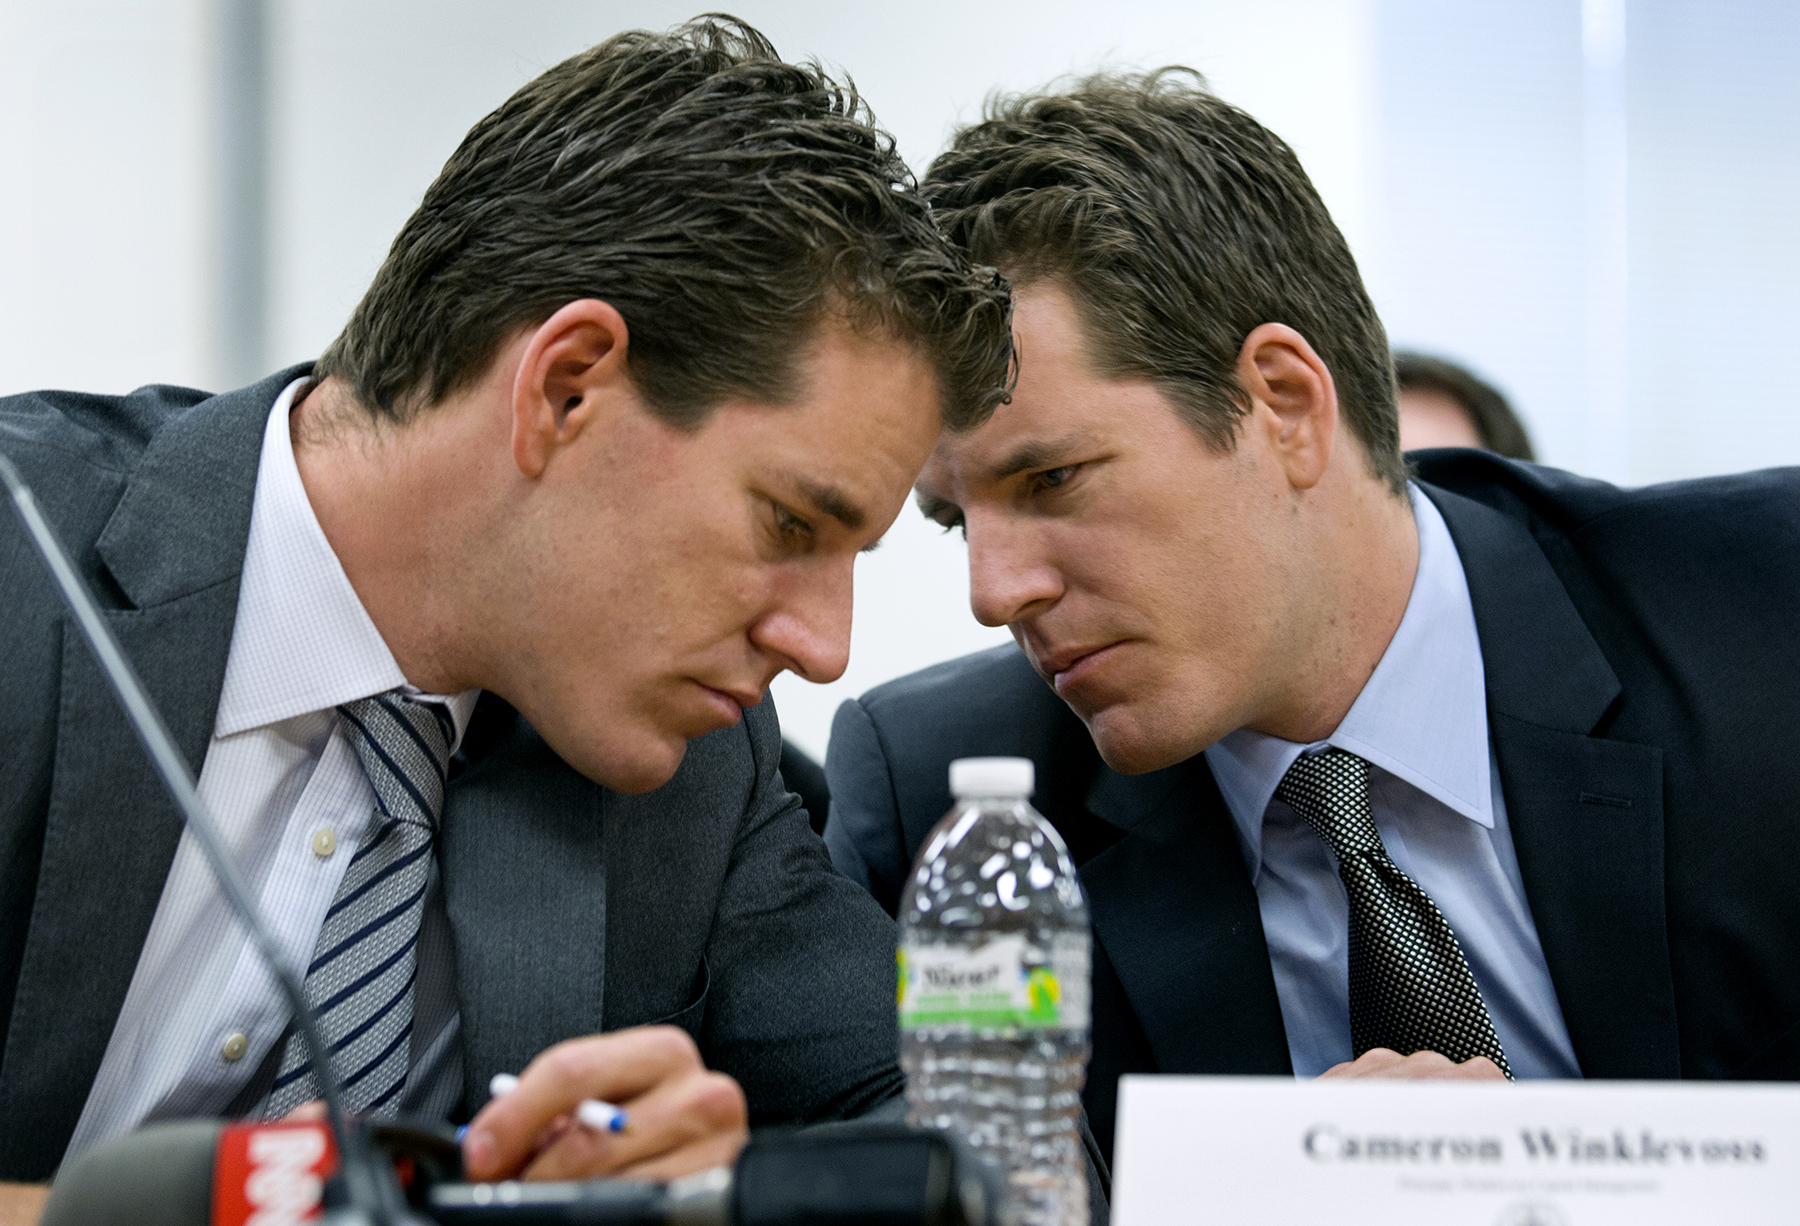 Entrepreneurs and twins Cameron, left, and Tyler Winklevoss testify at  modern currency hearing, 2014